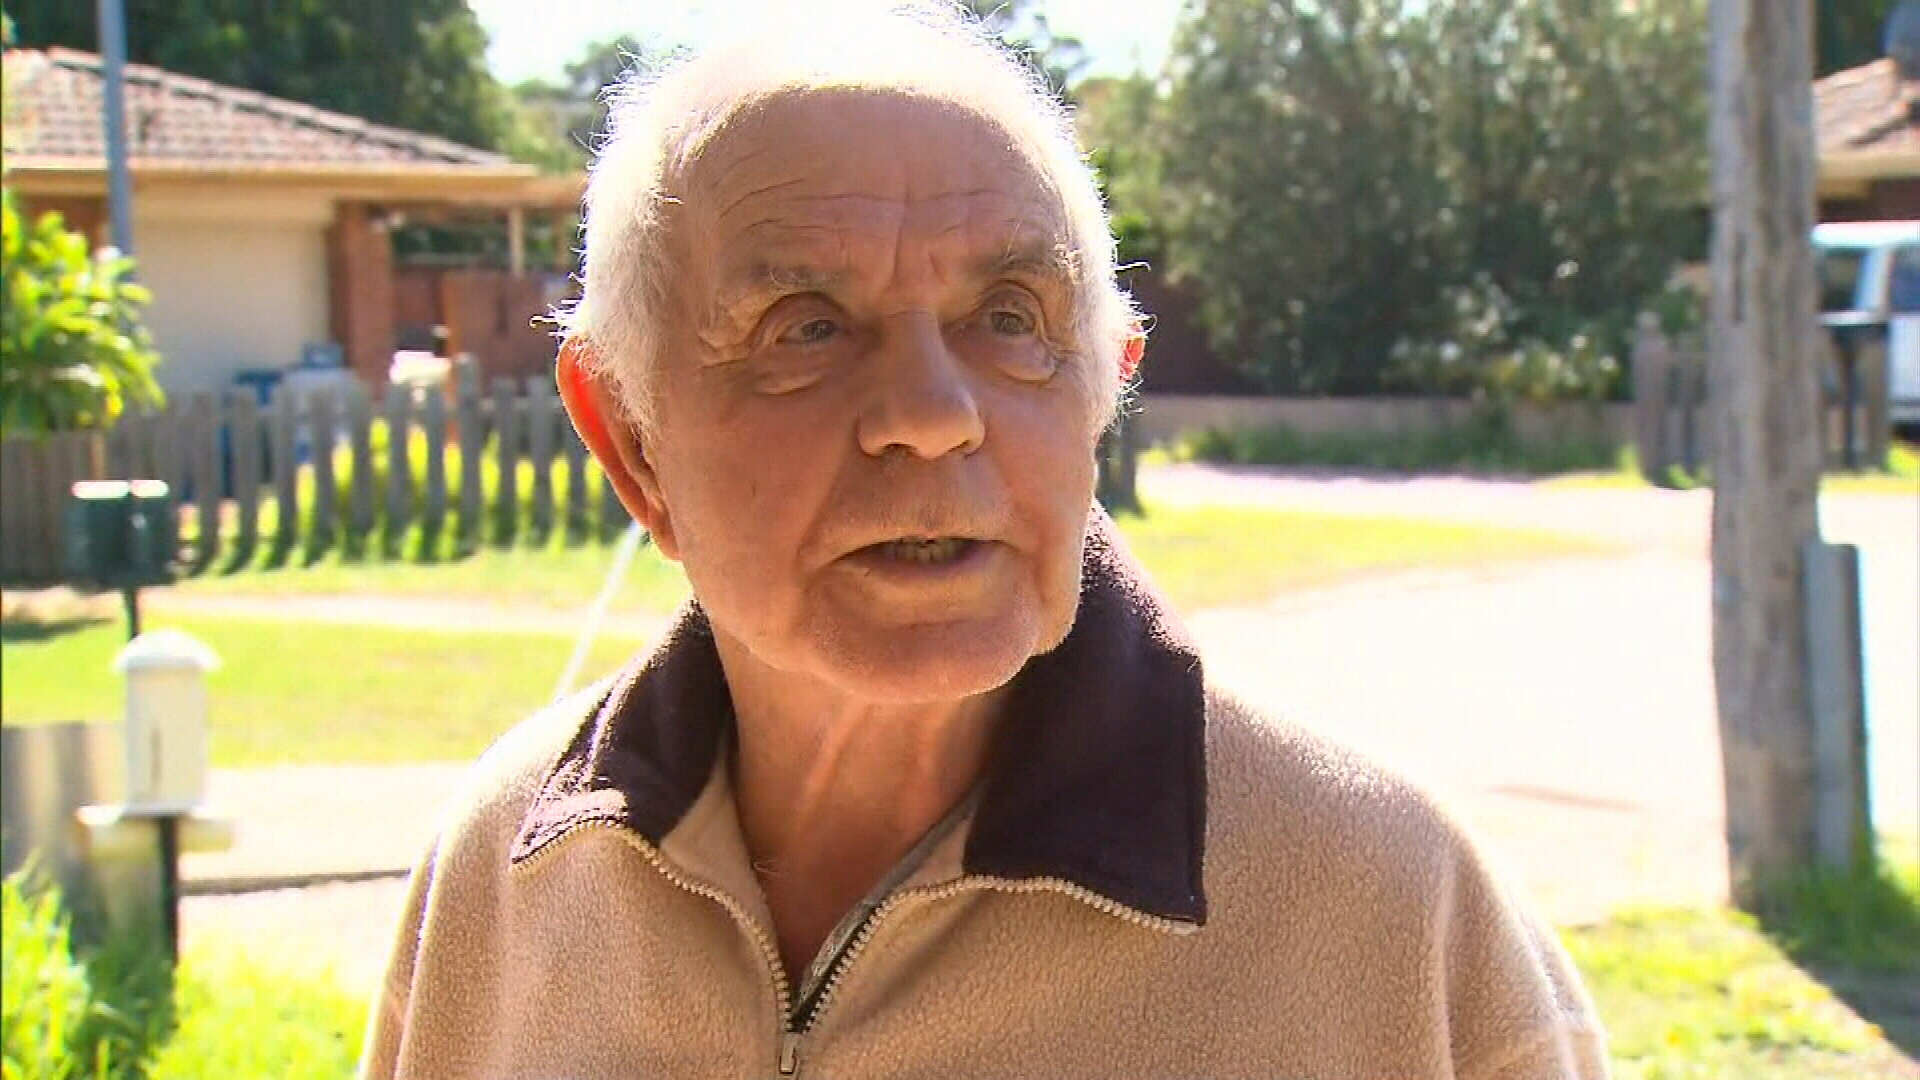 'Put my foot down': Grandfather 'sped through COVID-19 checkpoint'